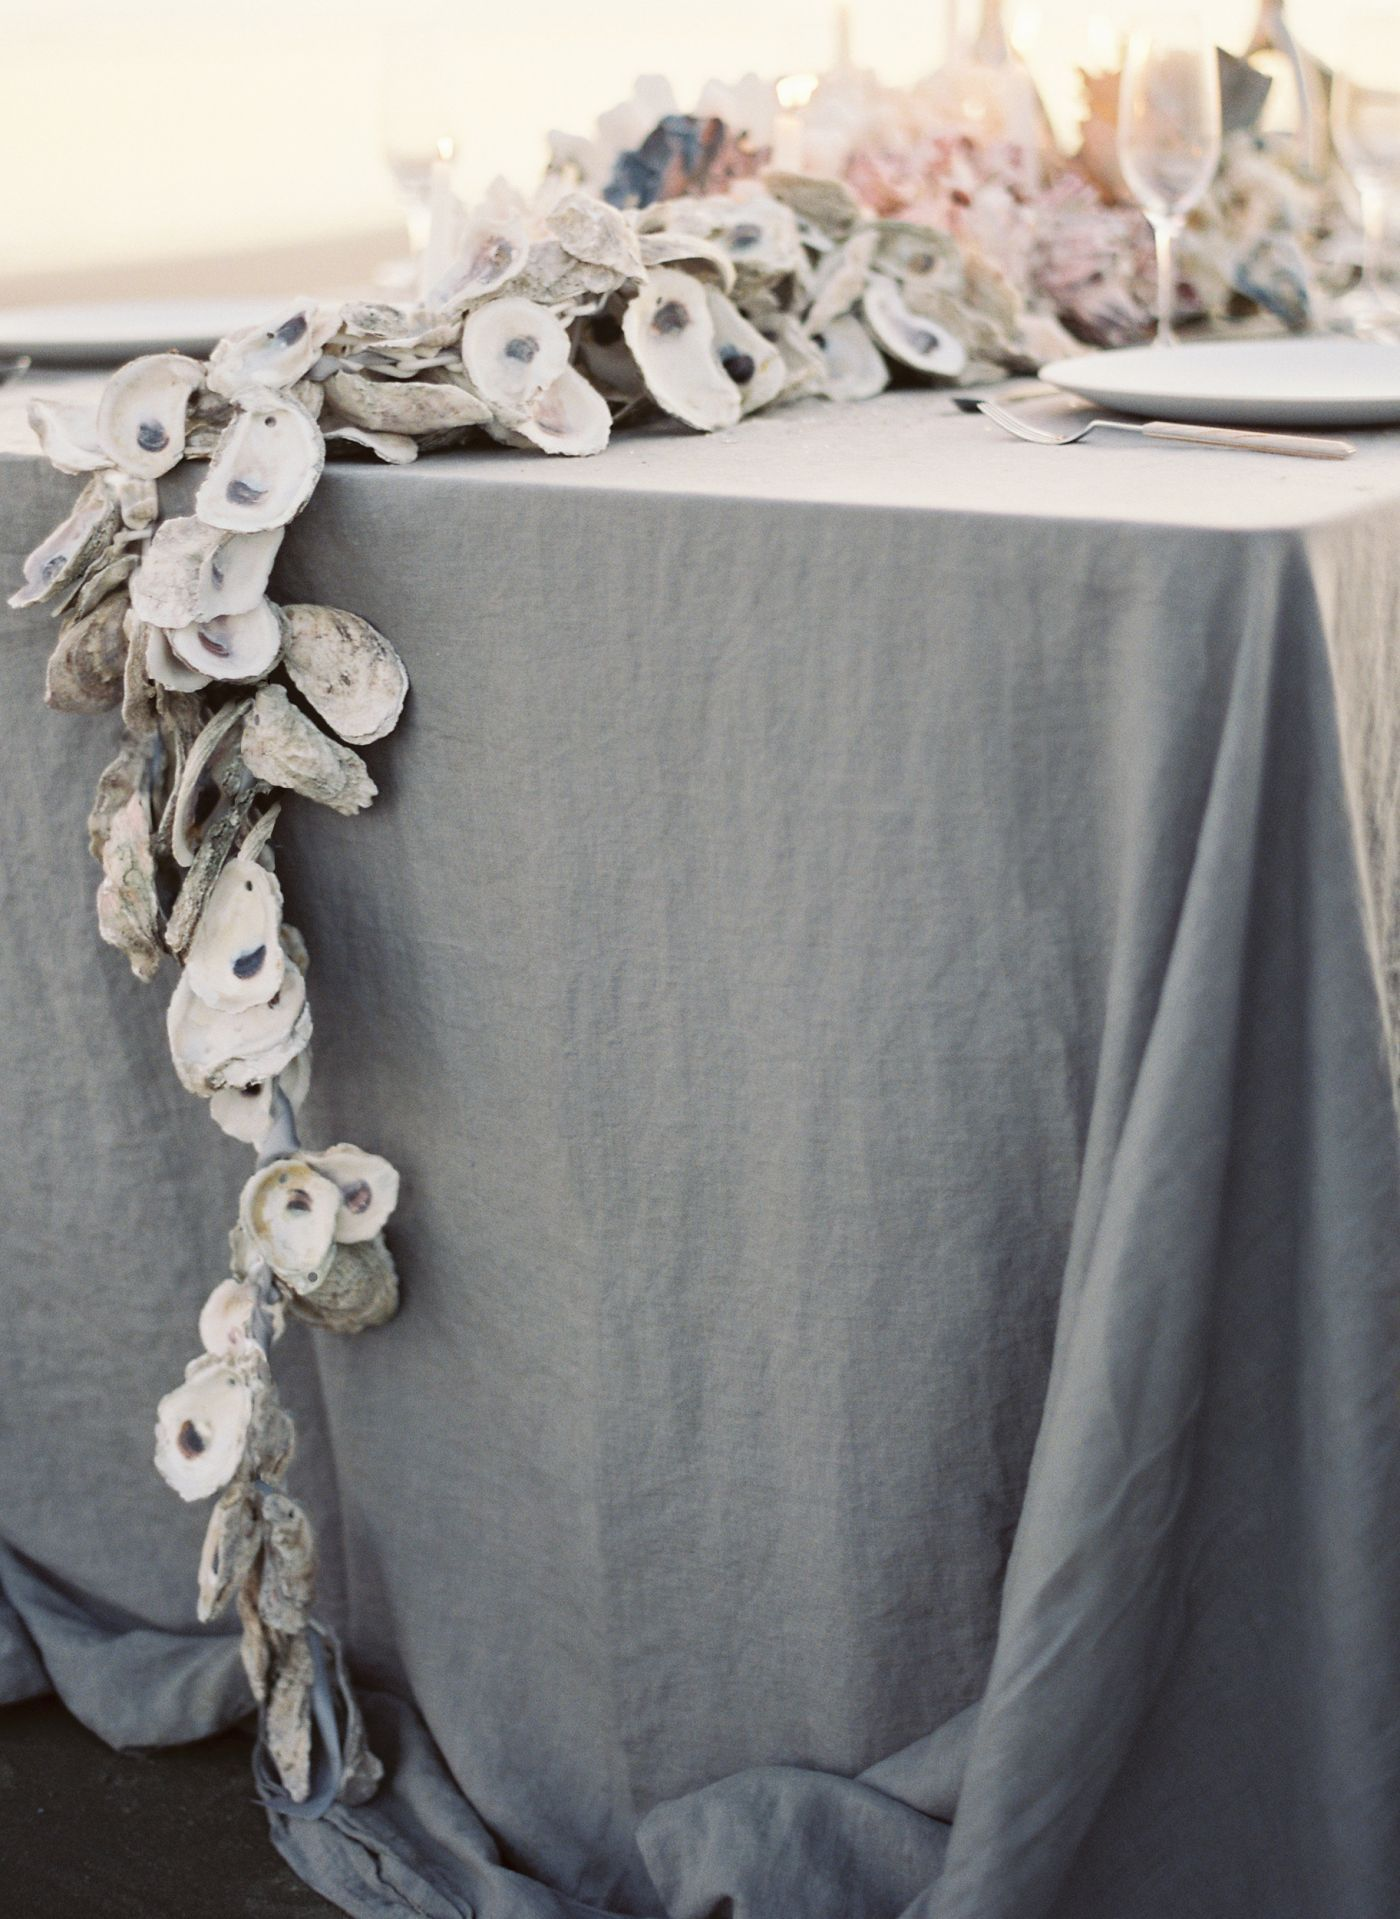 Beach Wedding Reception Oyster Garland Centerpiece